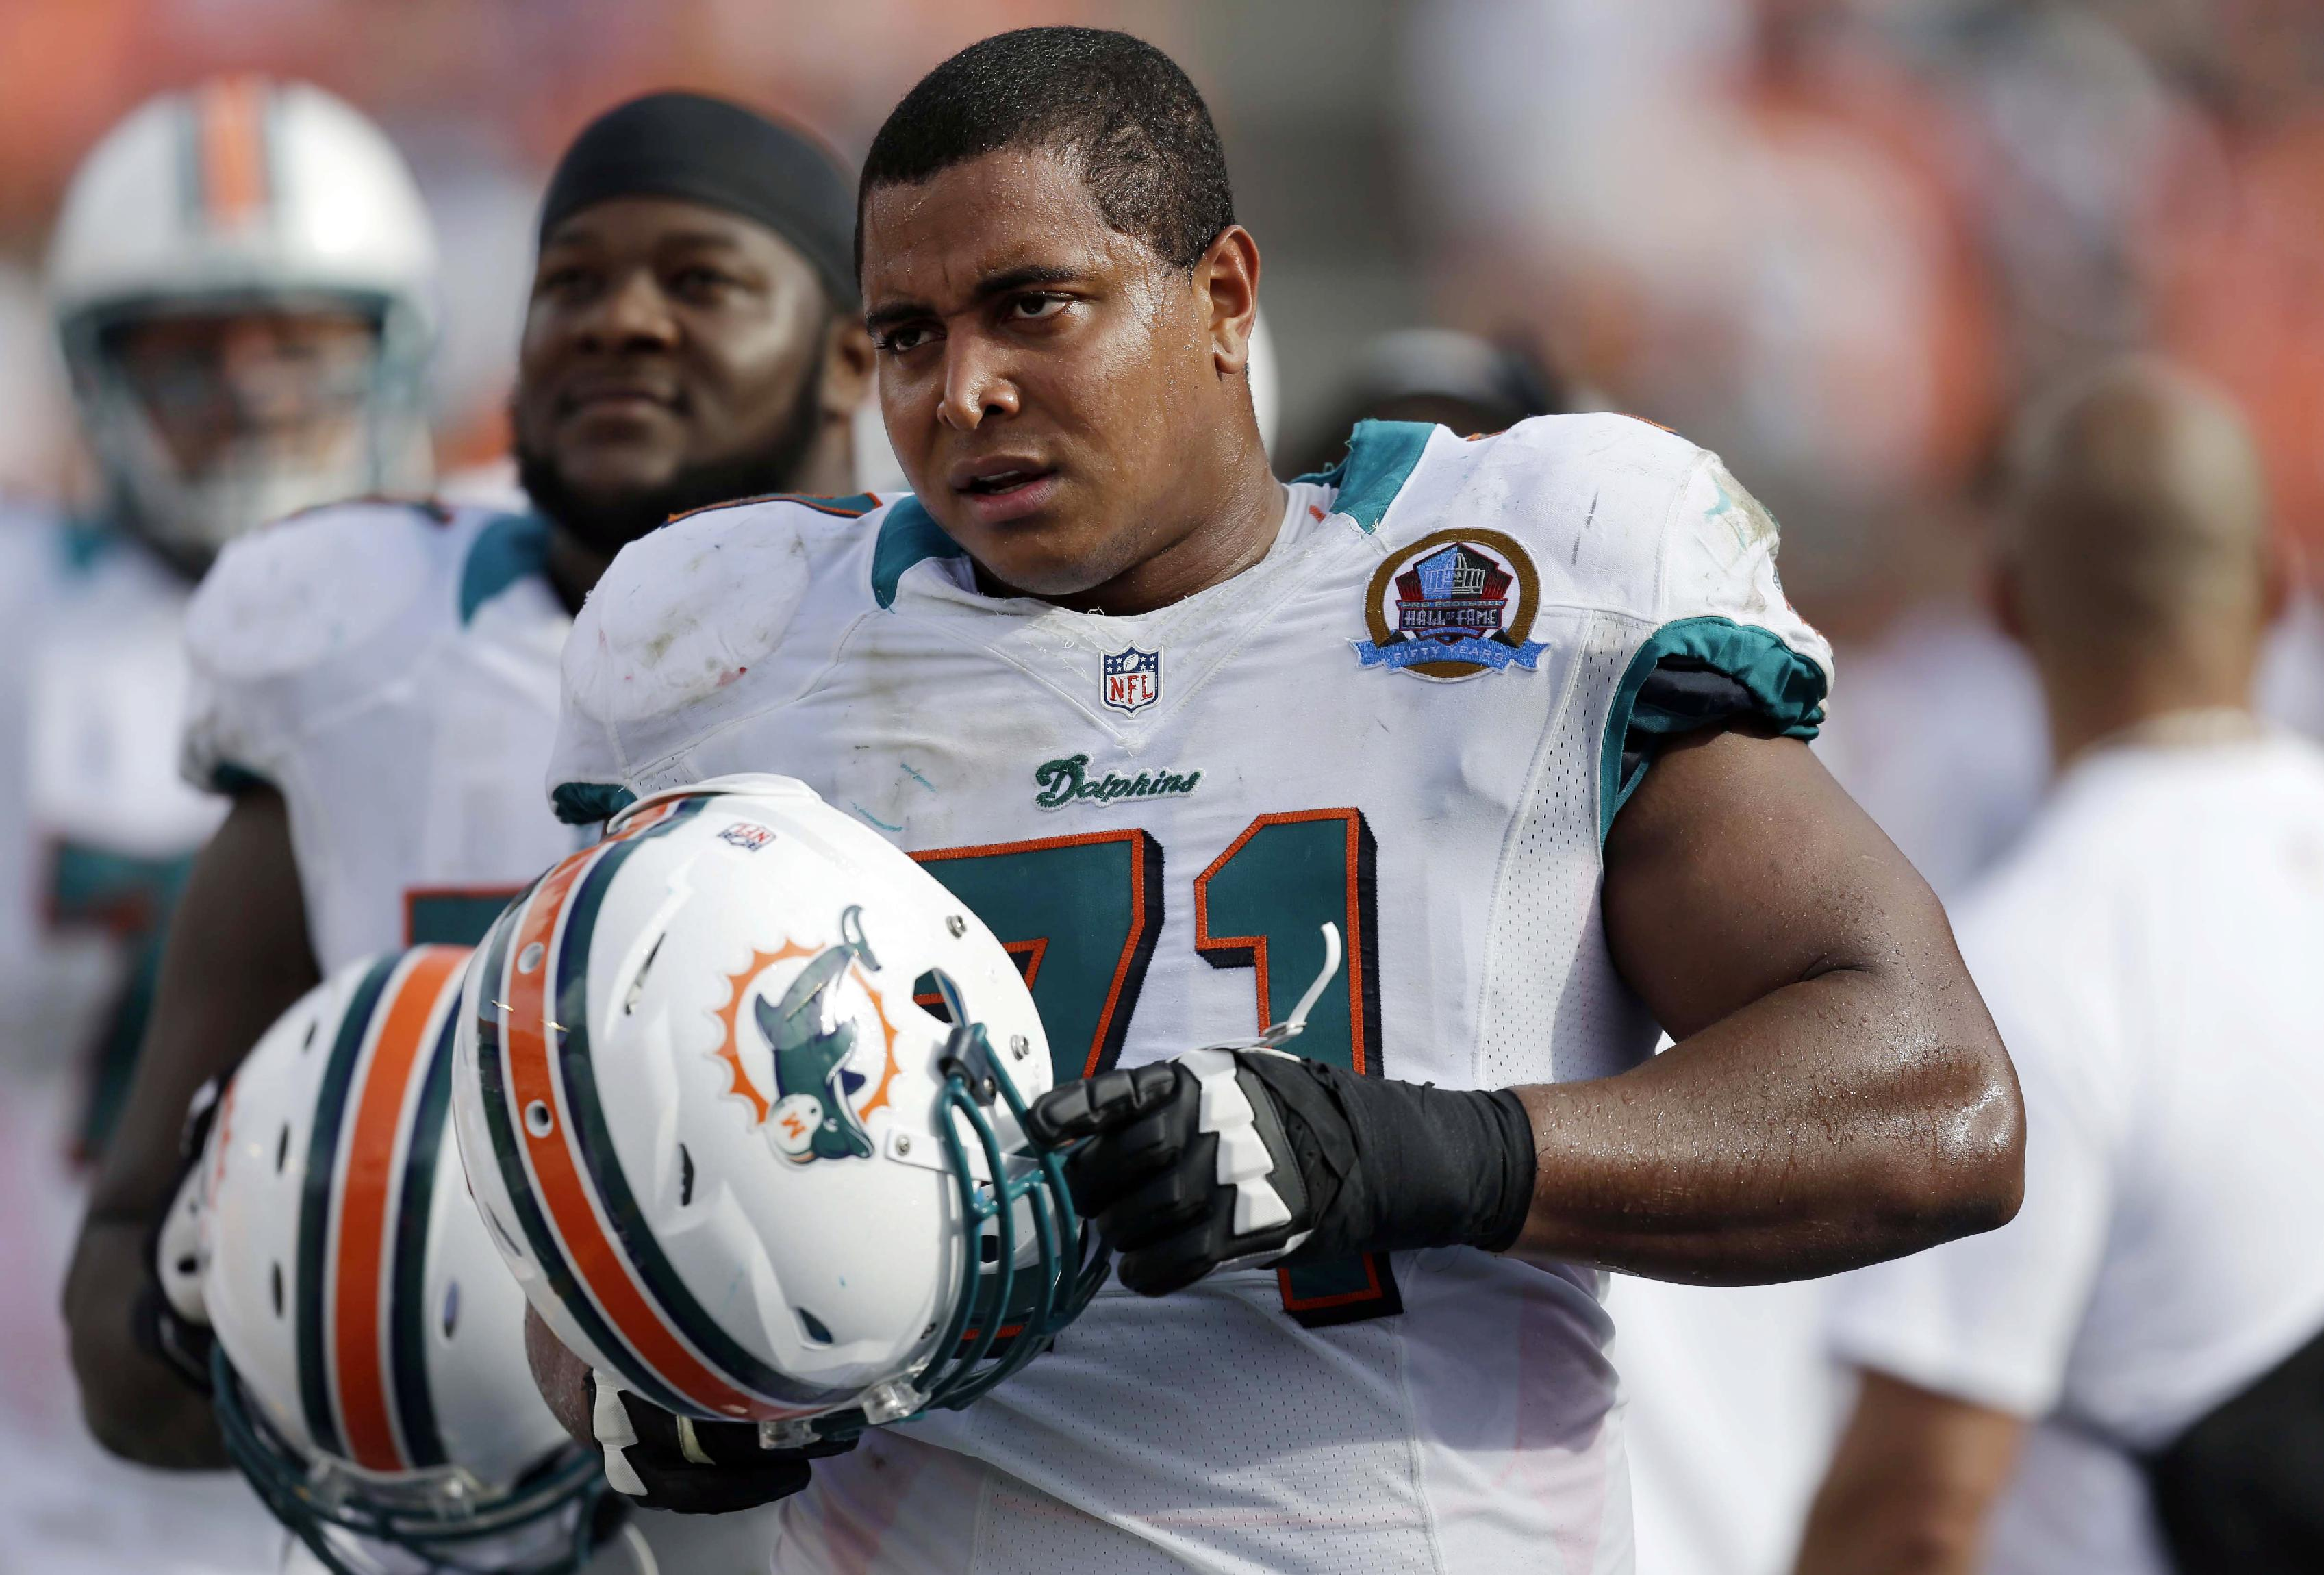 In this Dec. 16, 2012 file photo, Miami Dolphins tackle Jonathan Martin (71) watches from the sidelines during the second half of an NFL football game against the Jacksonville Jaguars, in Miami. Martin was subjected to